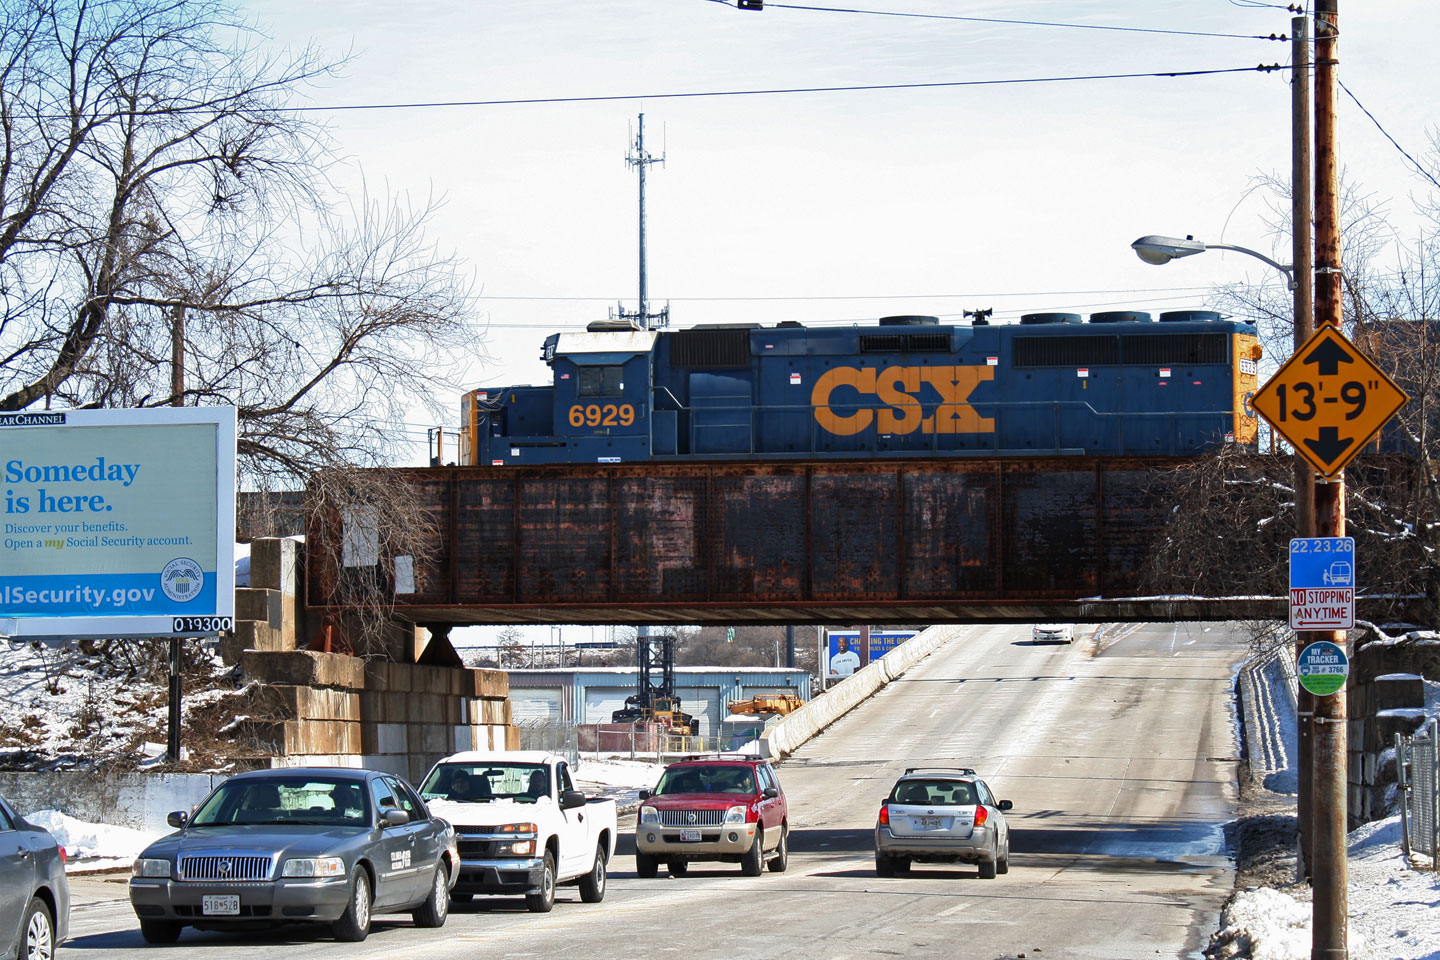 CSX Intermodal Transfer at LombardSt